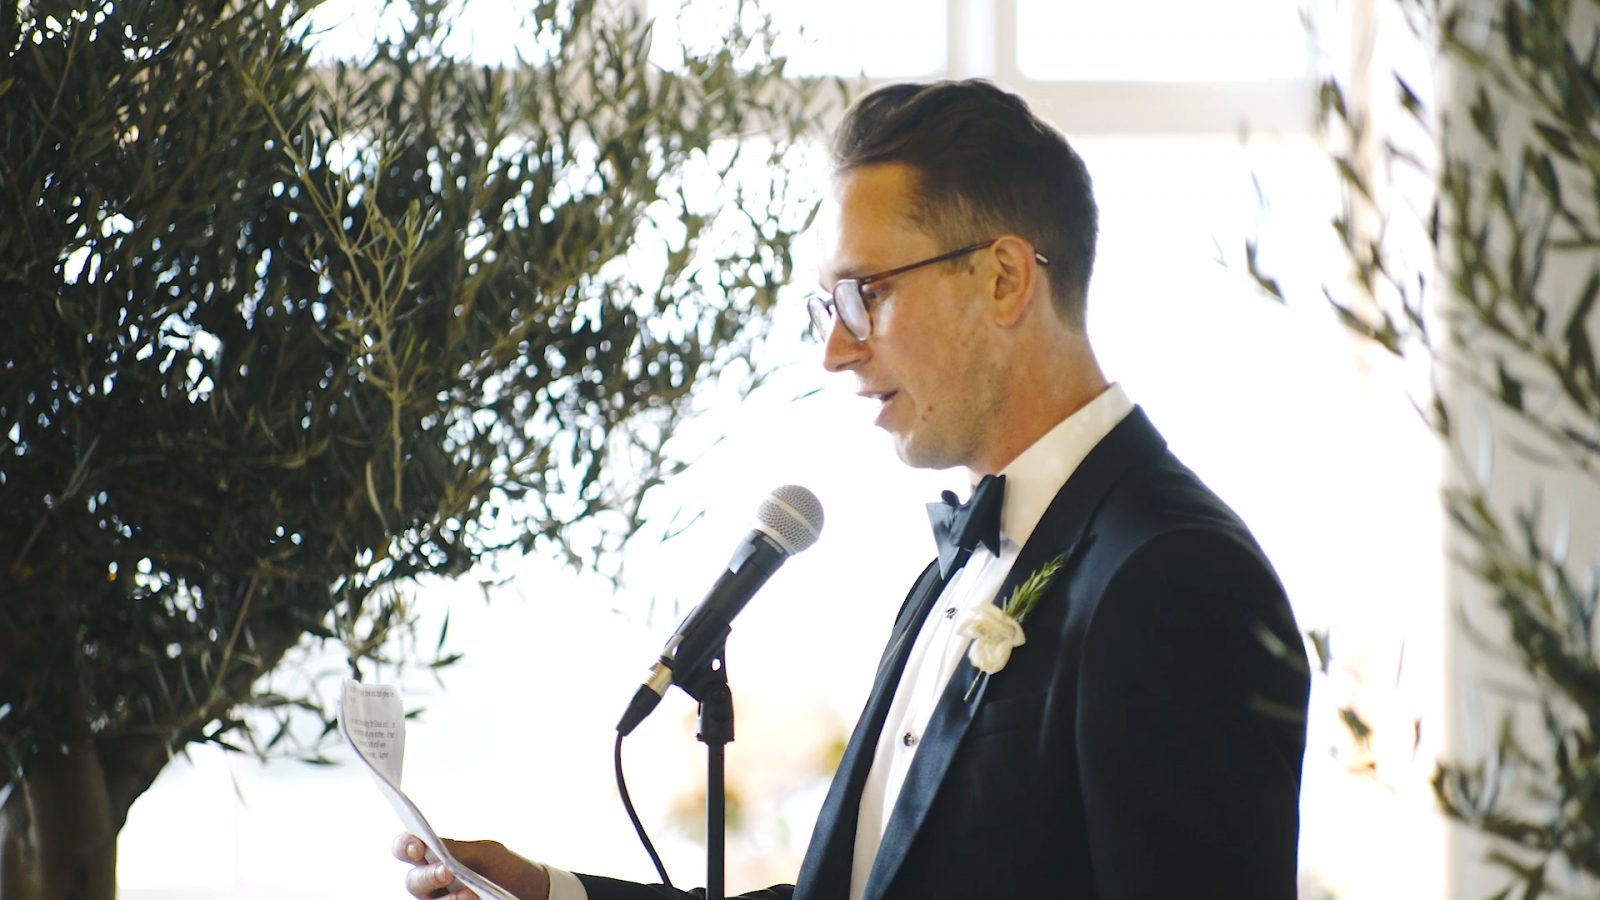 A groom gives his speech